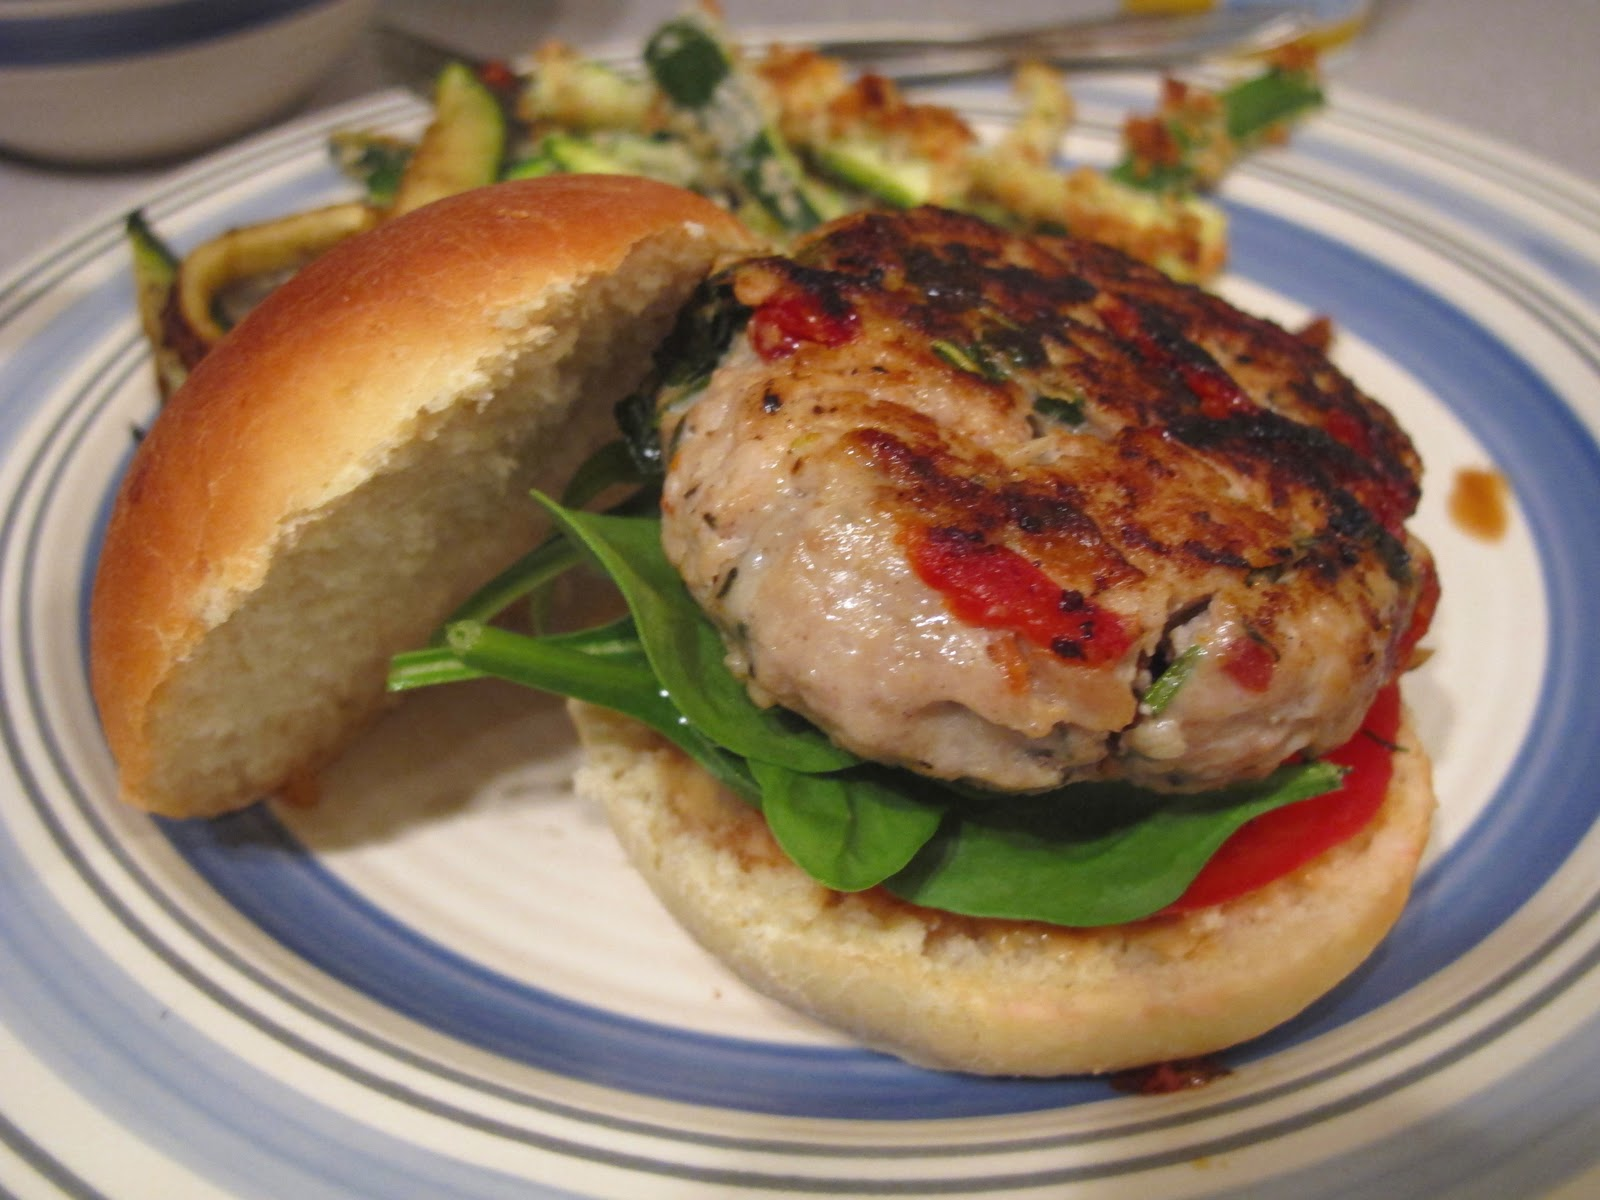 images of chicken burgers - photo #35